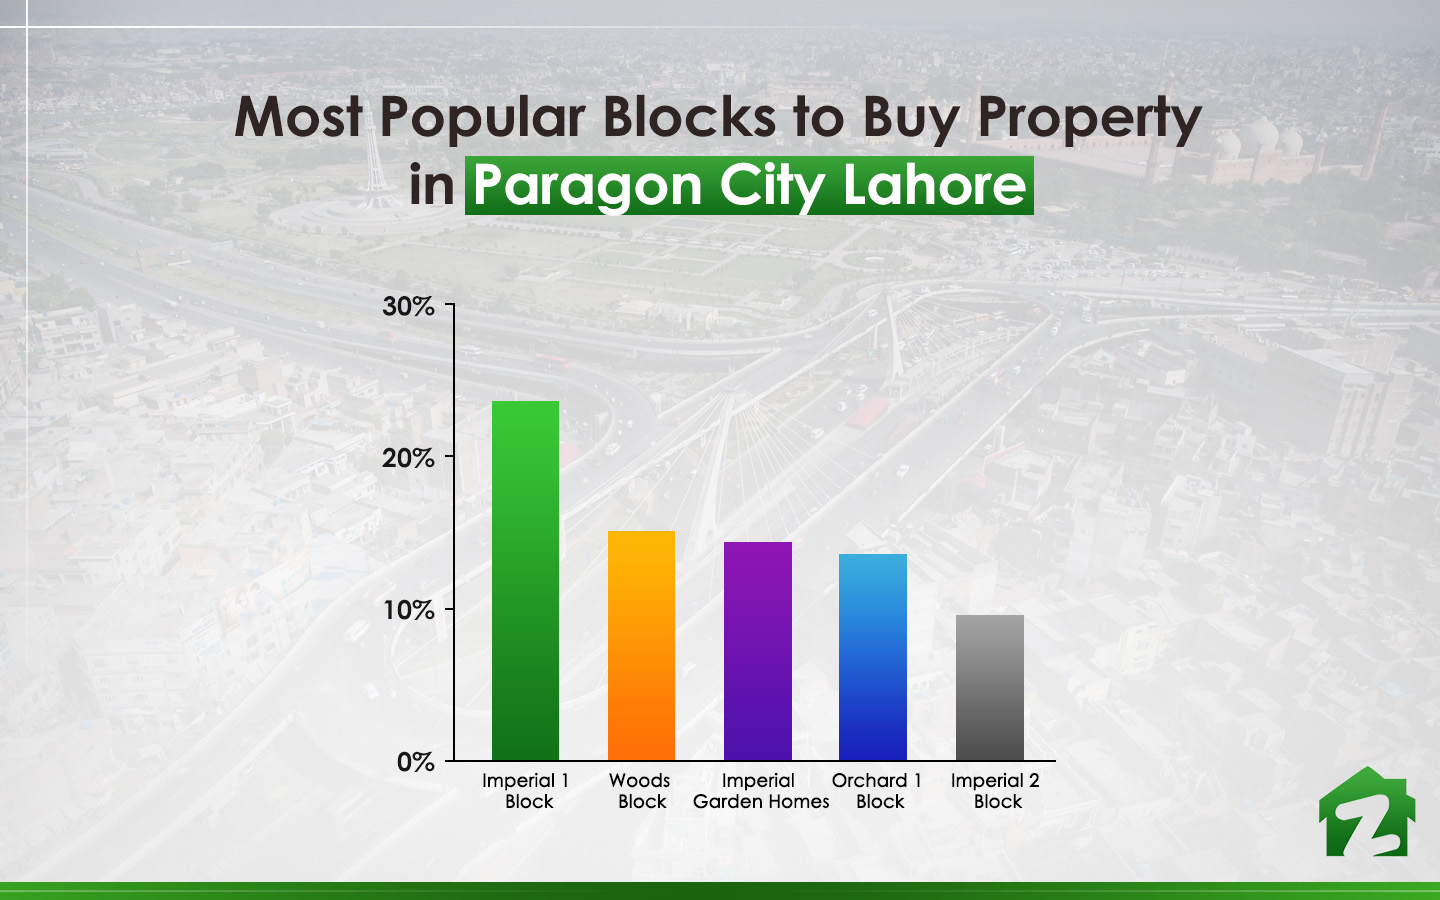 Popular Blocks to Buy Property in Paragon City Lahore